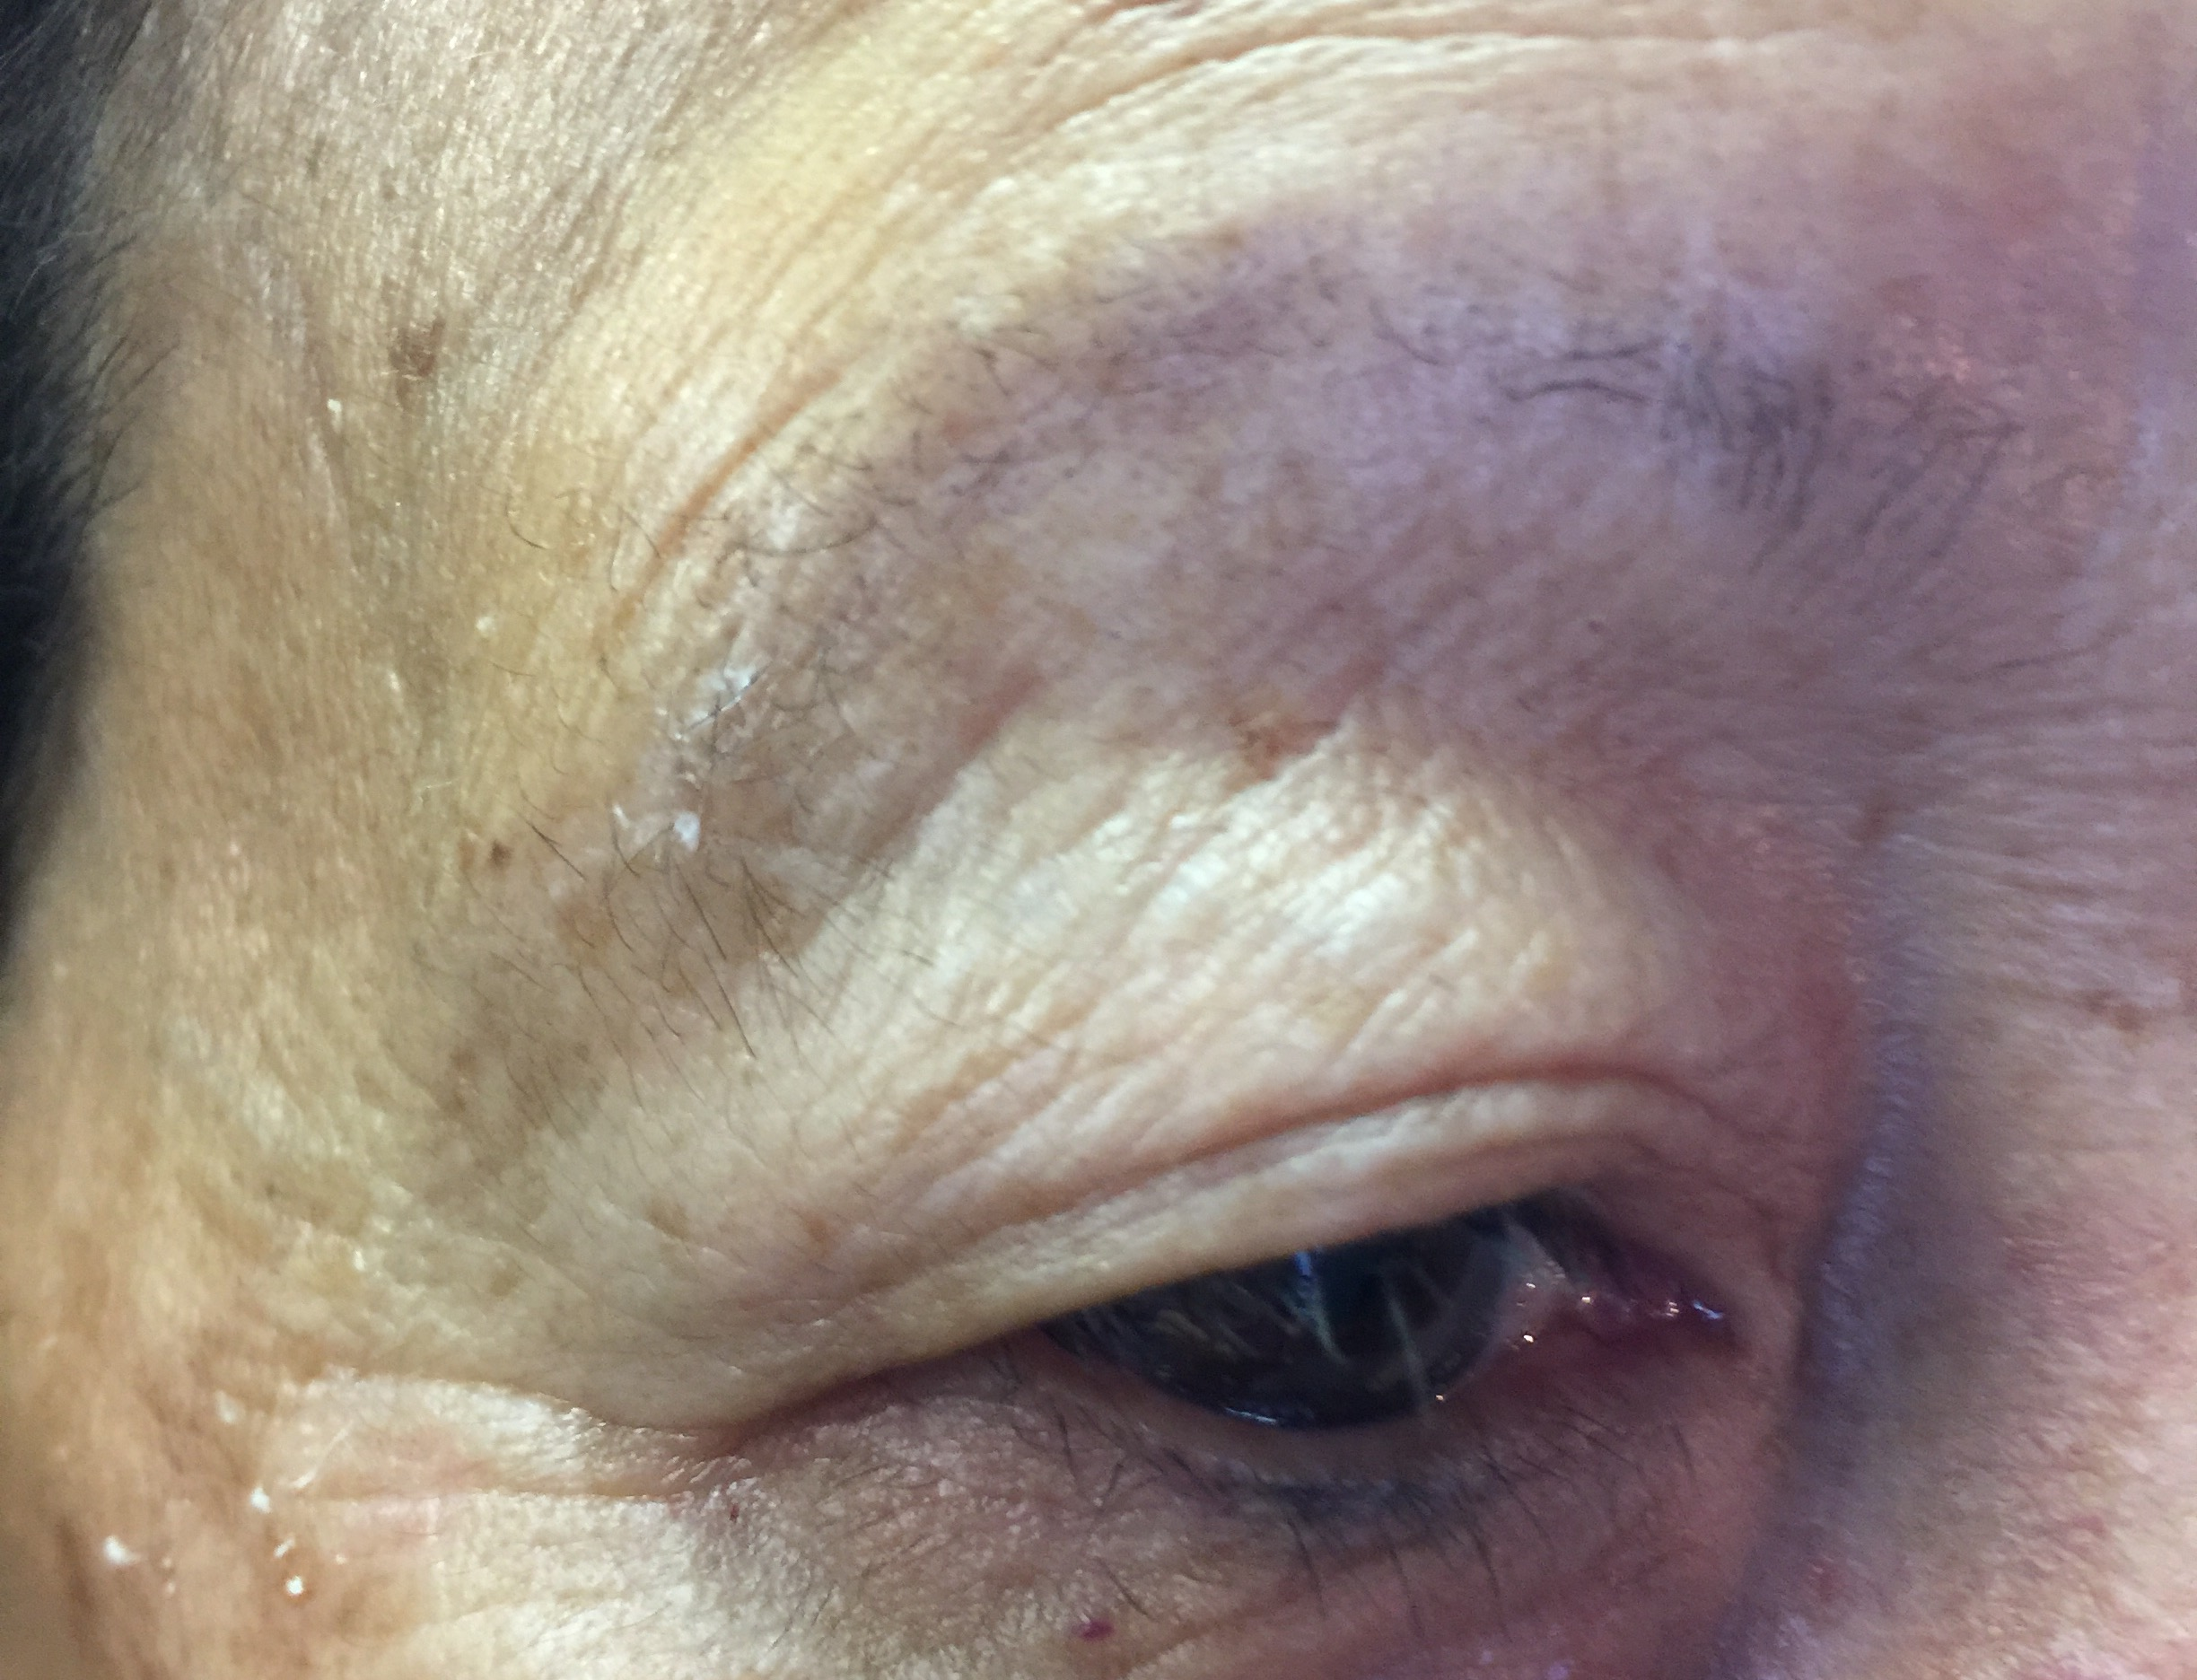 Brow Before Microblade Procedure